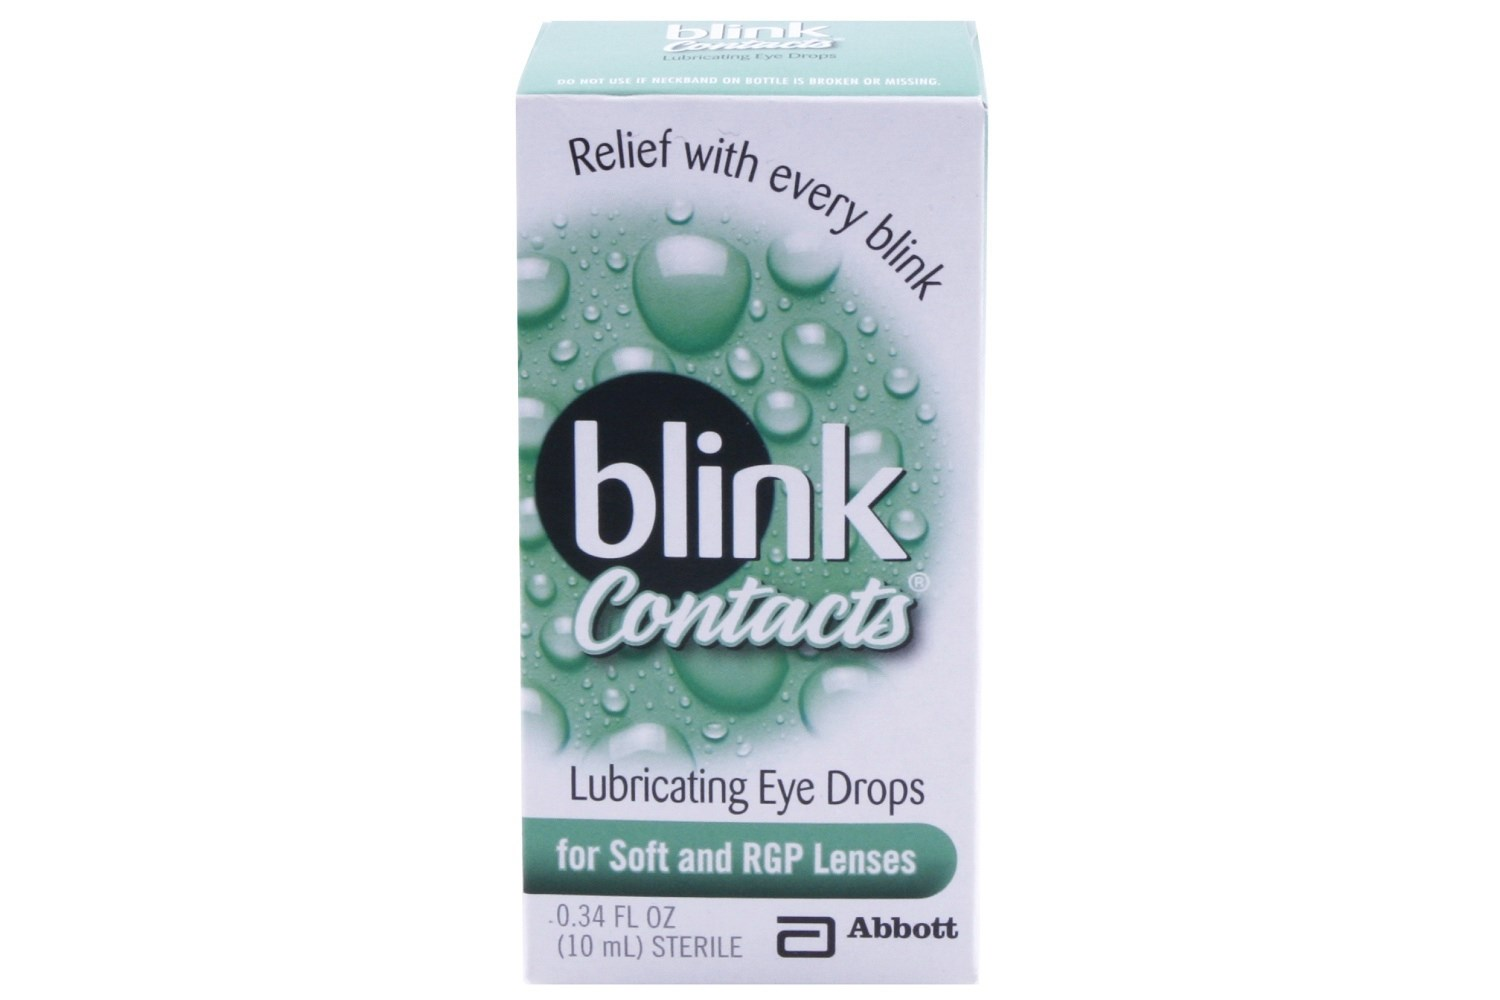 Blink Contacts Lubricant Eye Drops 3 fl oz